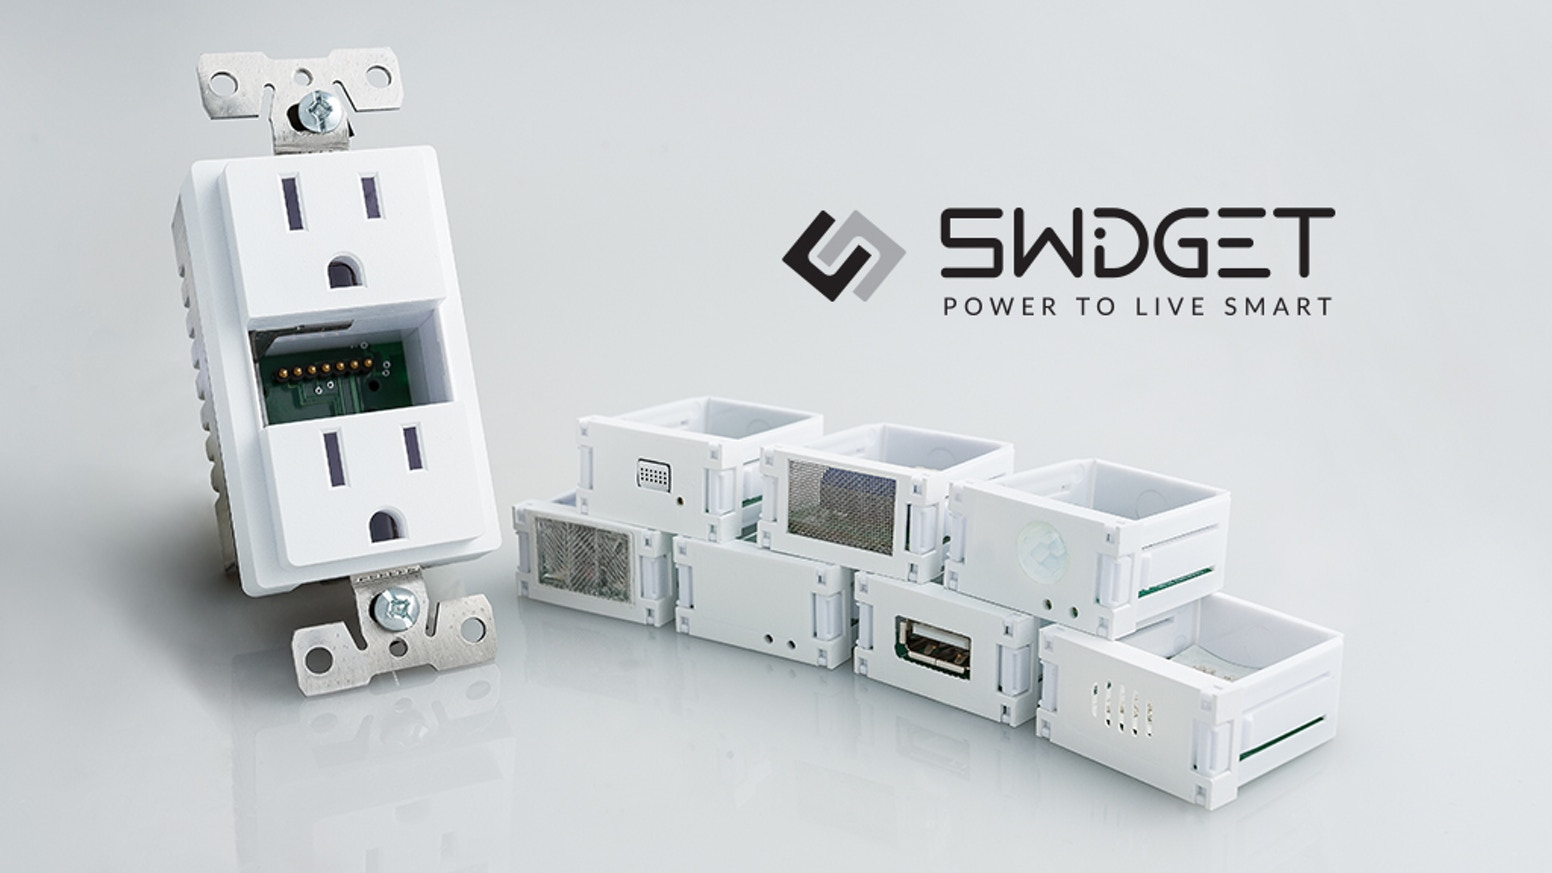 Swidget Outlet The Smart Home Device For All Platforms By To Wiring Installed Using Your Existing Eliminates Clutter Hiding Technology Into